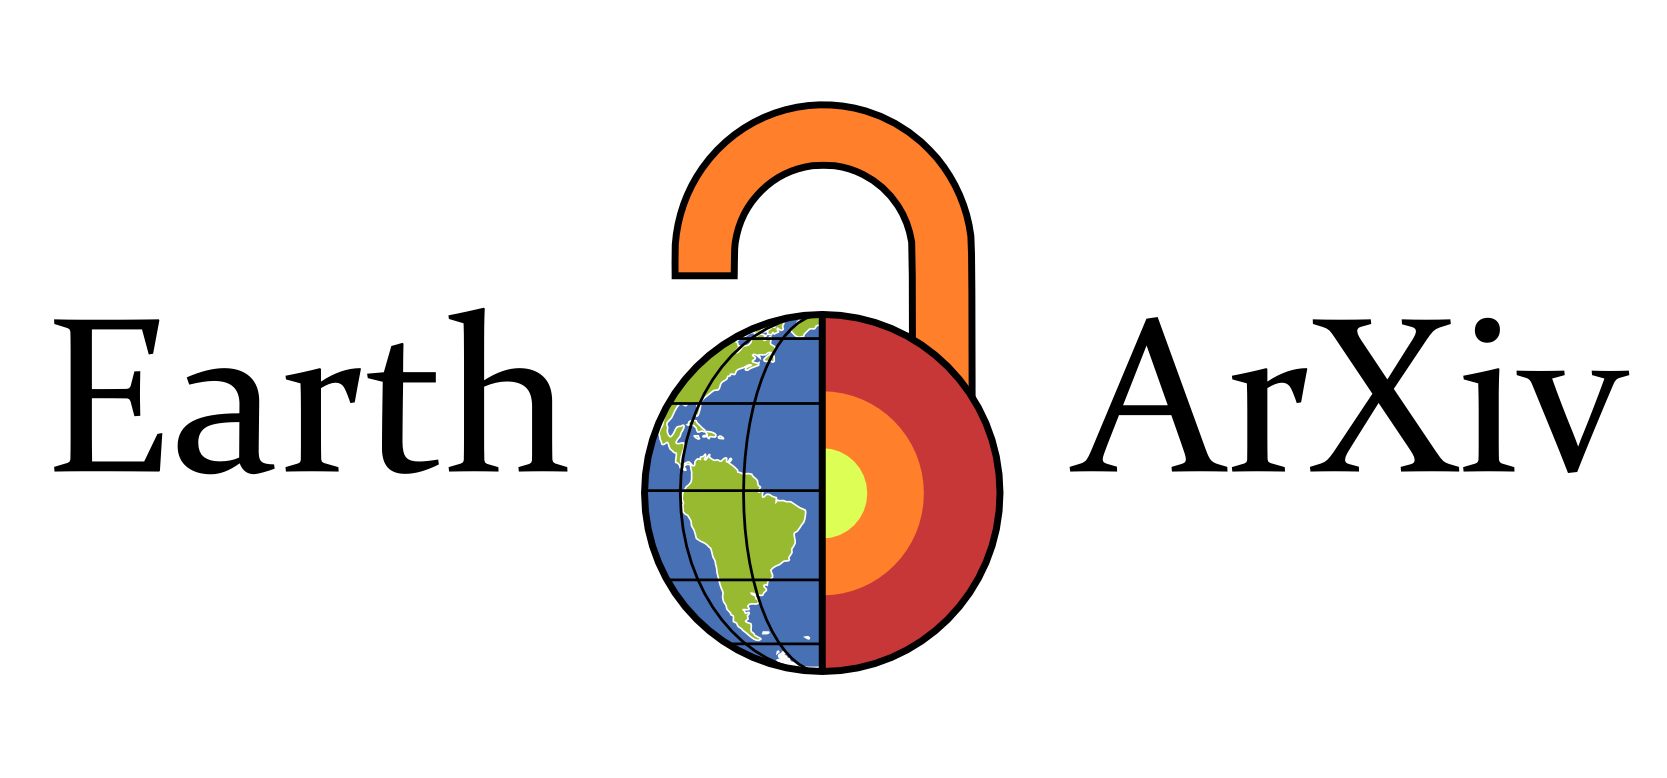 EarthArxiv logo. An open orange lock with blue and green earth surrounded by the text Earth ArXiv